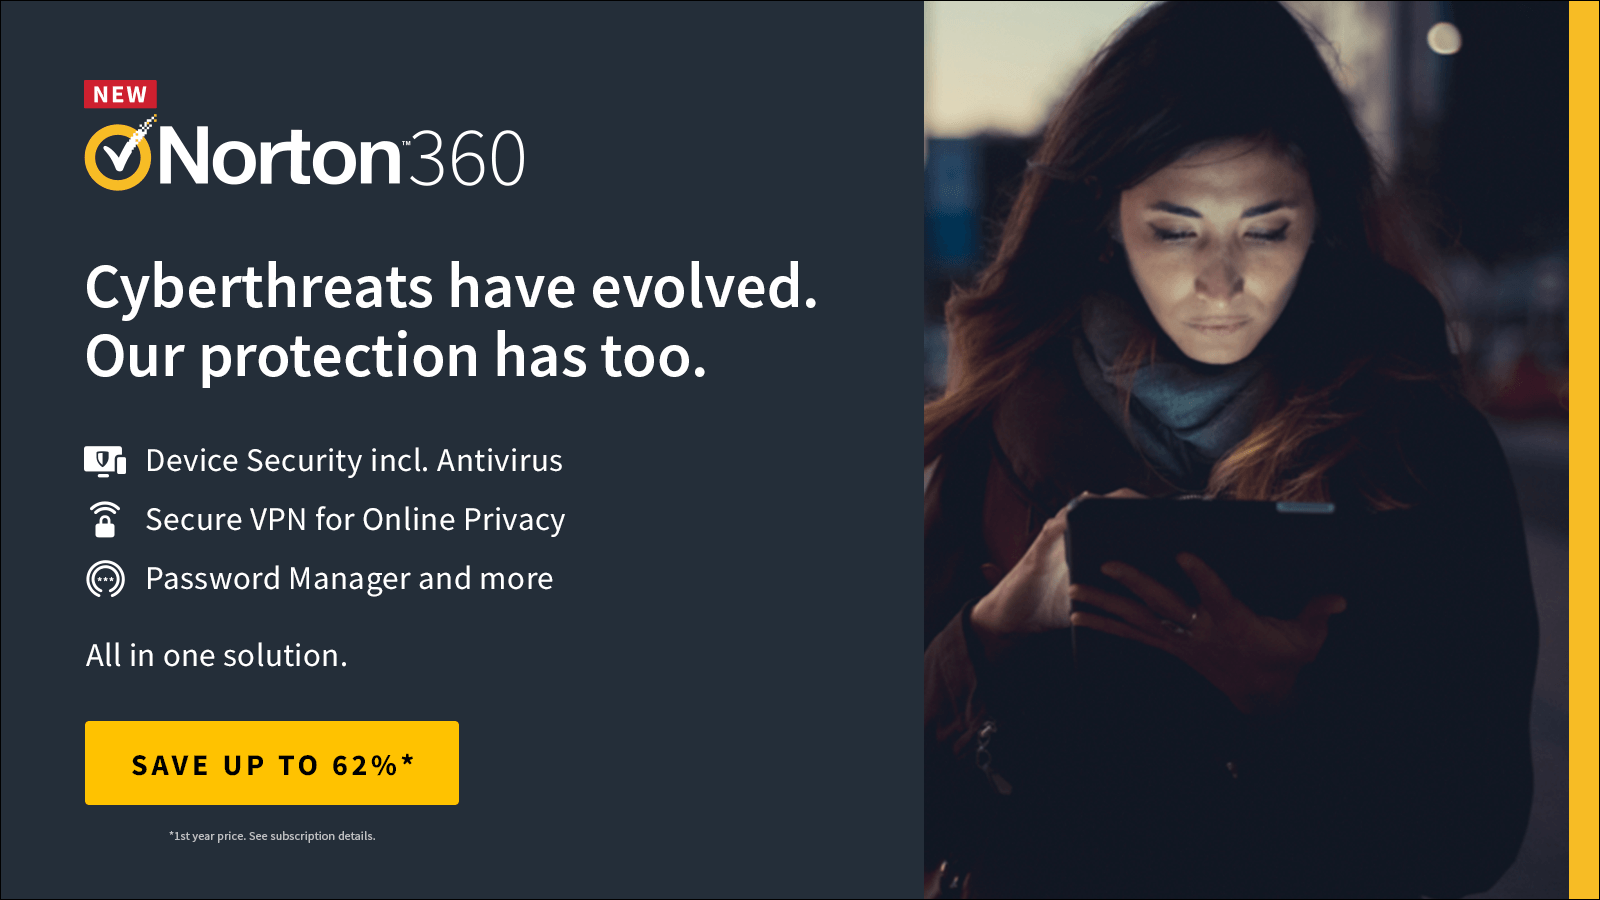 Norton360 by Symantec 1600x900